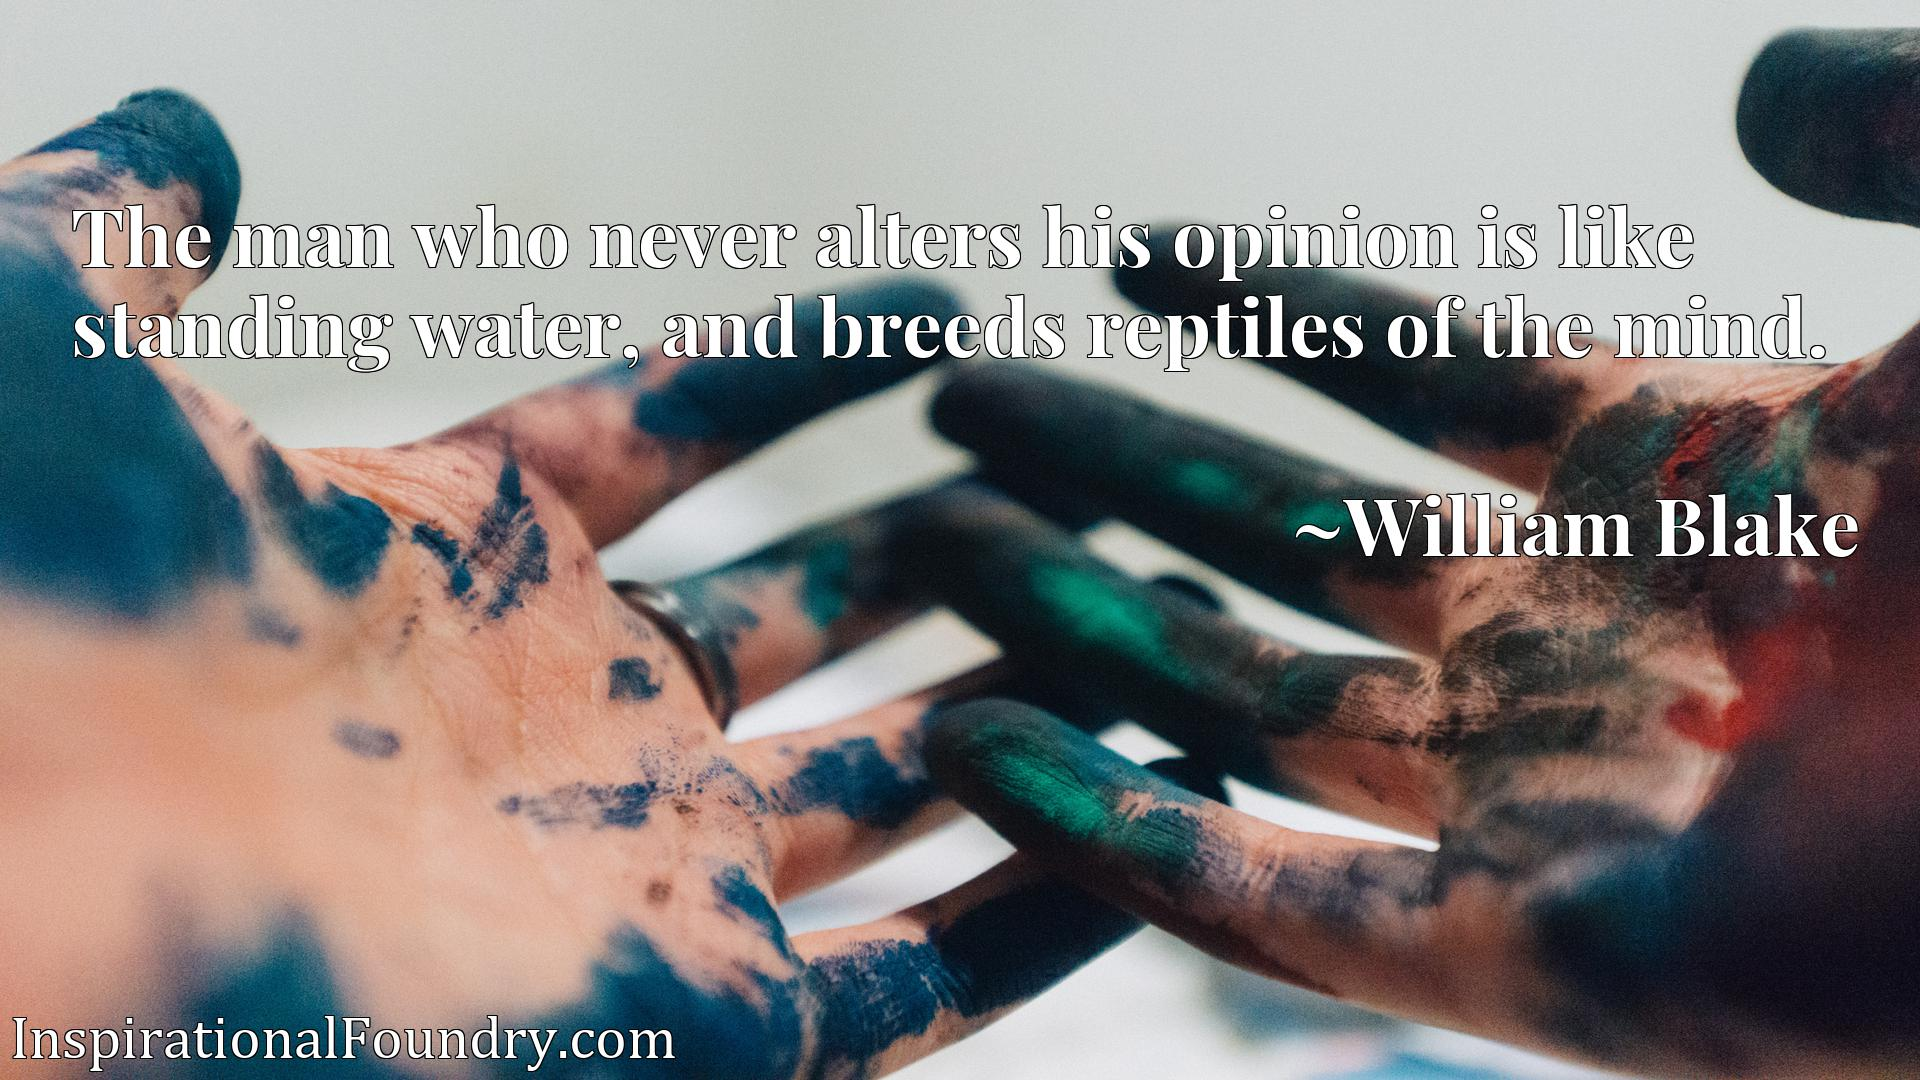 The man who never alters his opinion is like standing water, and breeds reptiles of the mind.